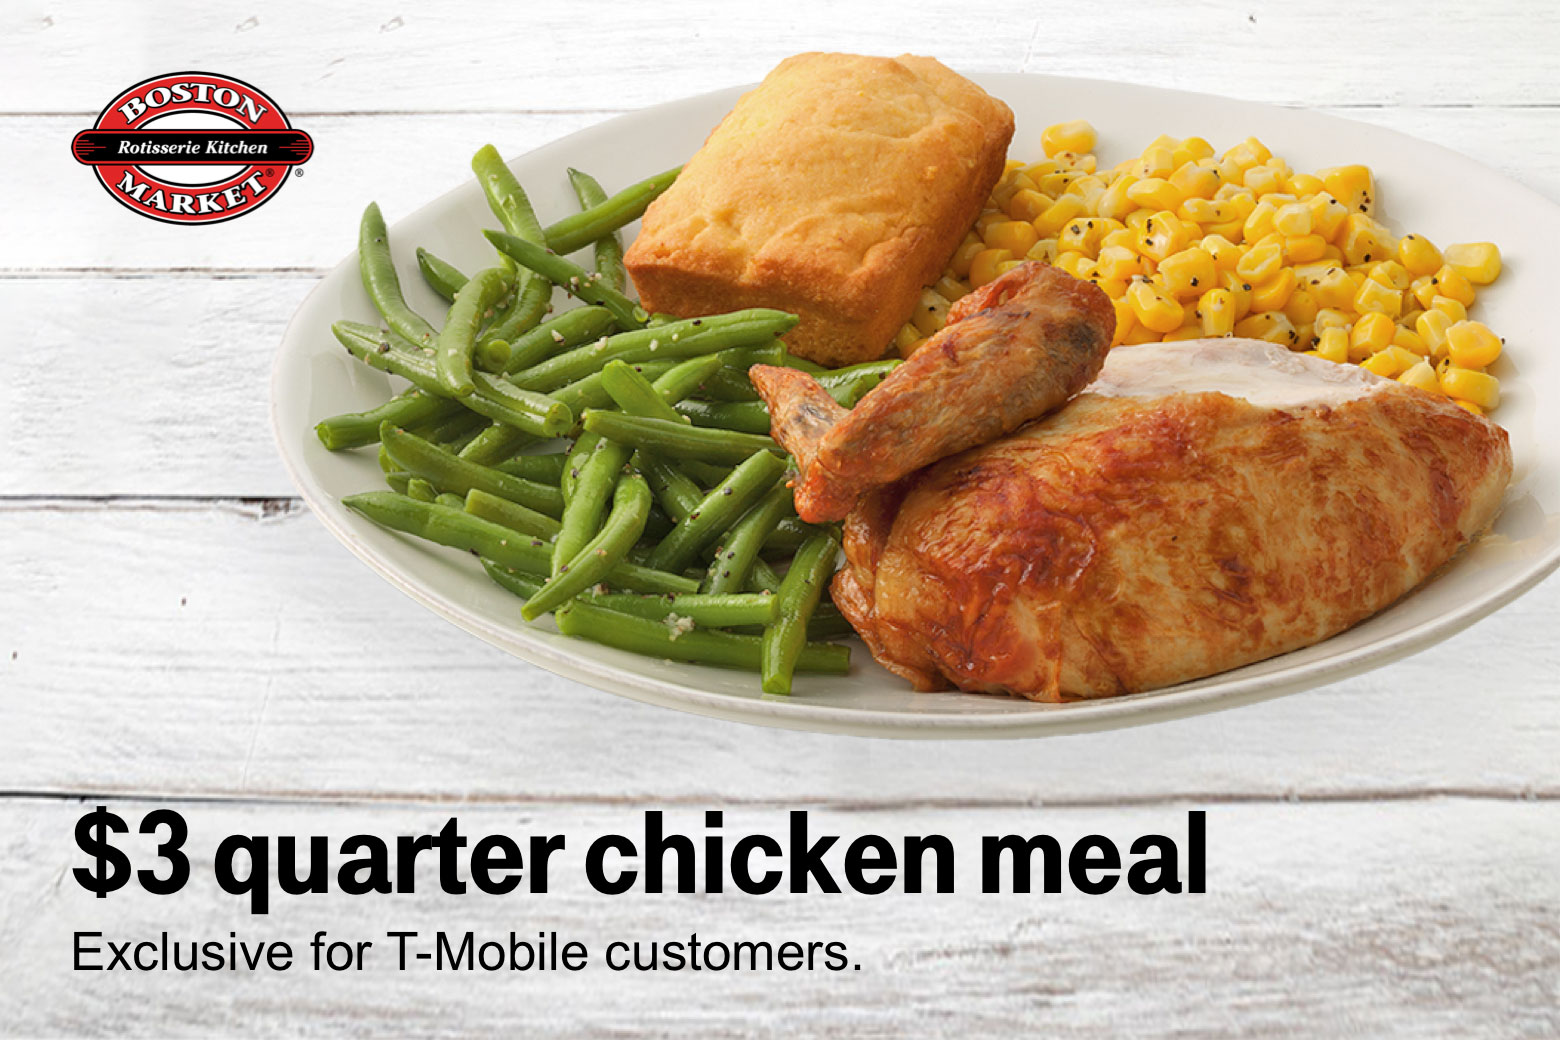 Boston Market. $3 quarter chicken meal. Exclusive for T-Mobile customers.